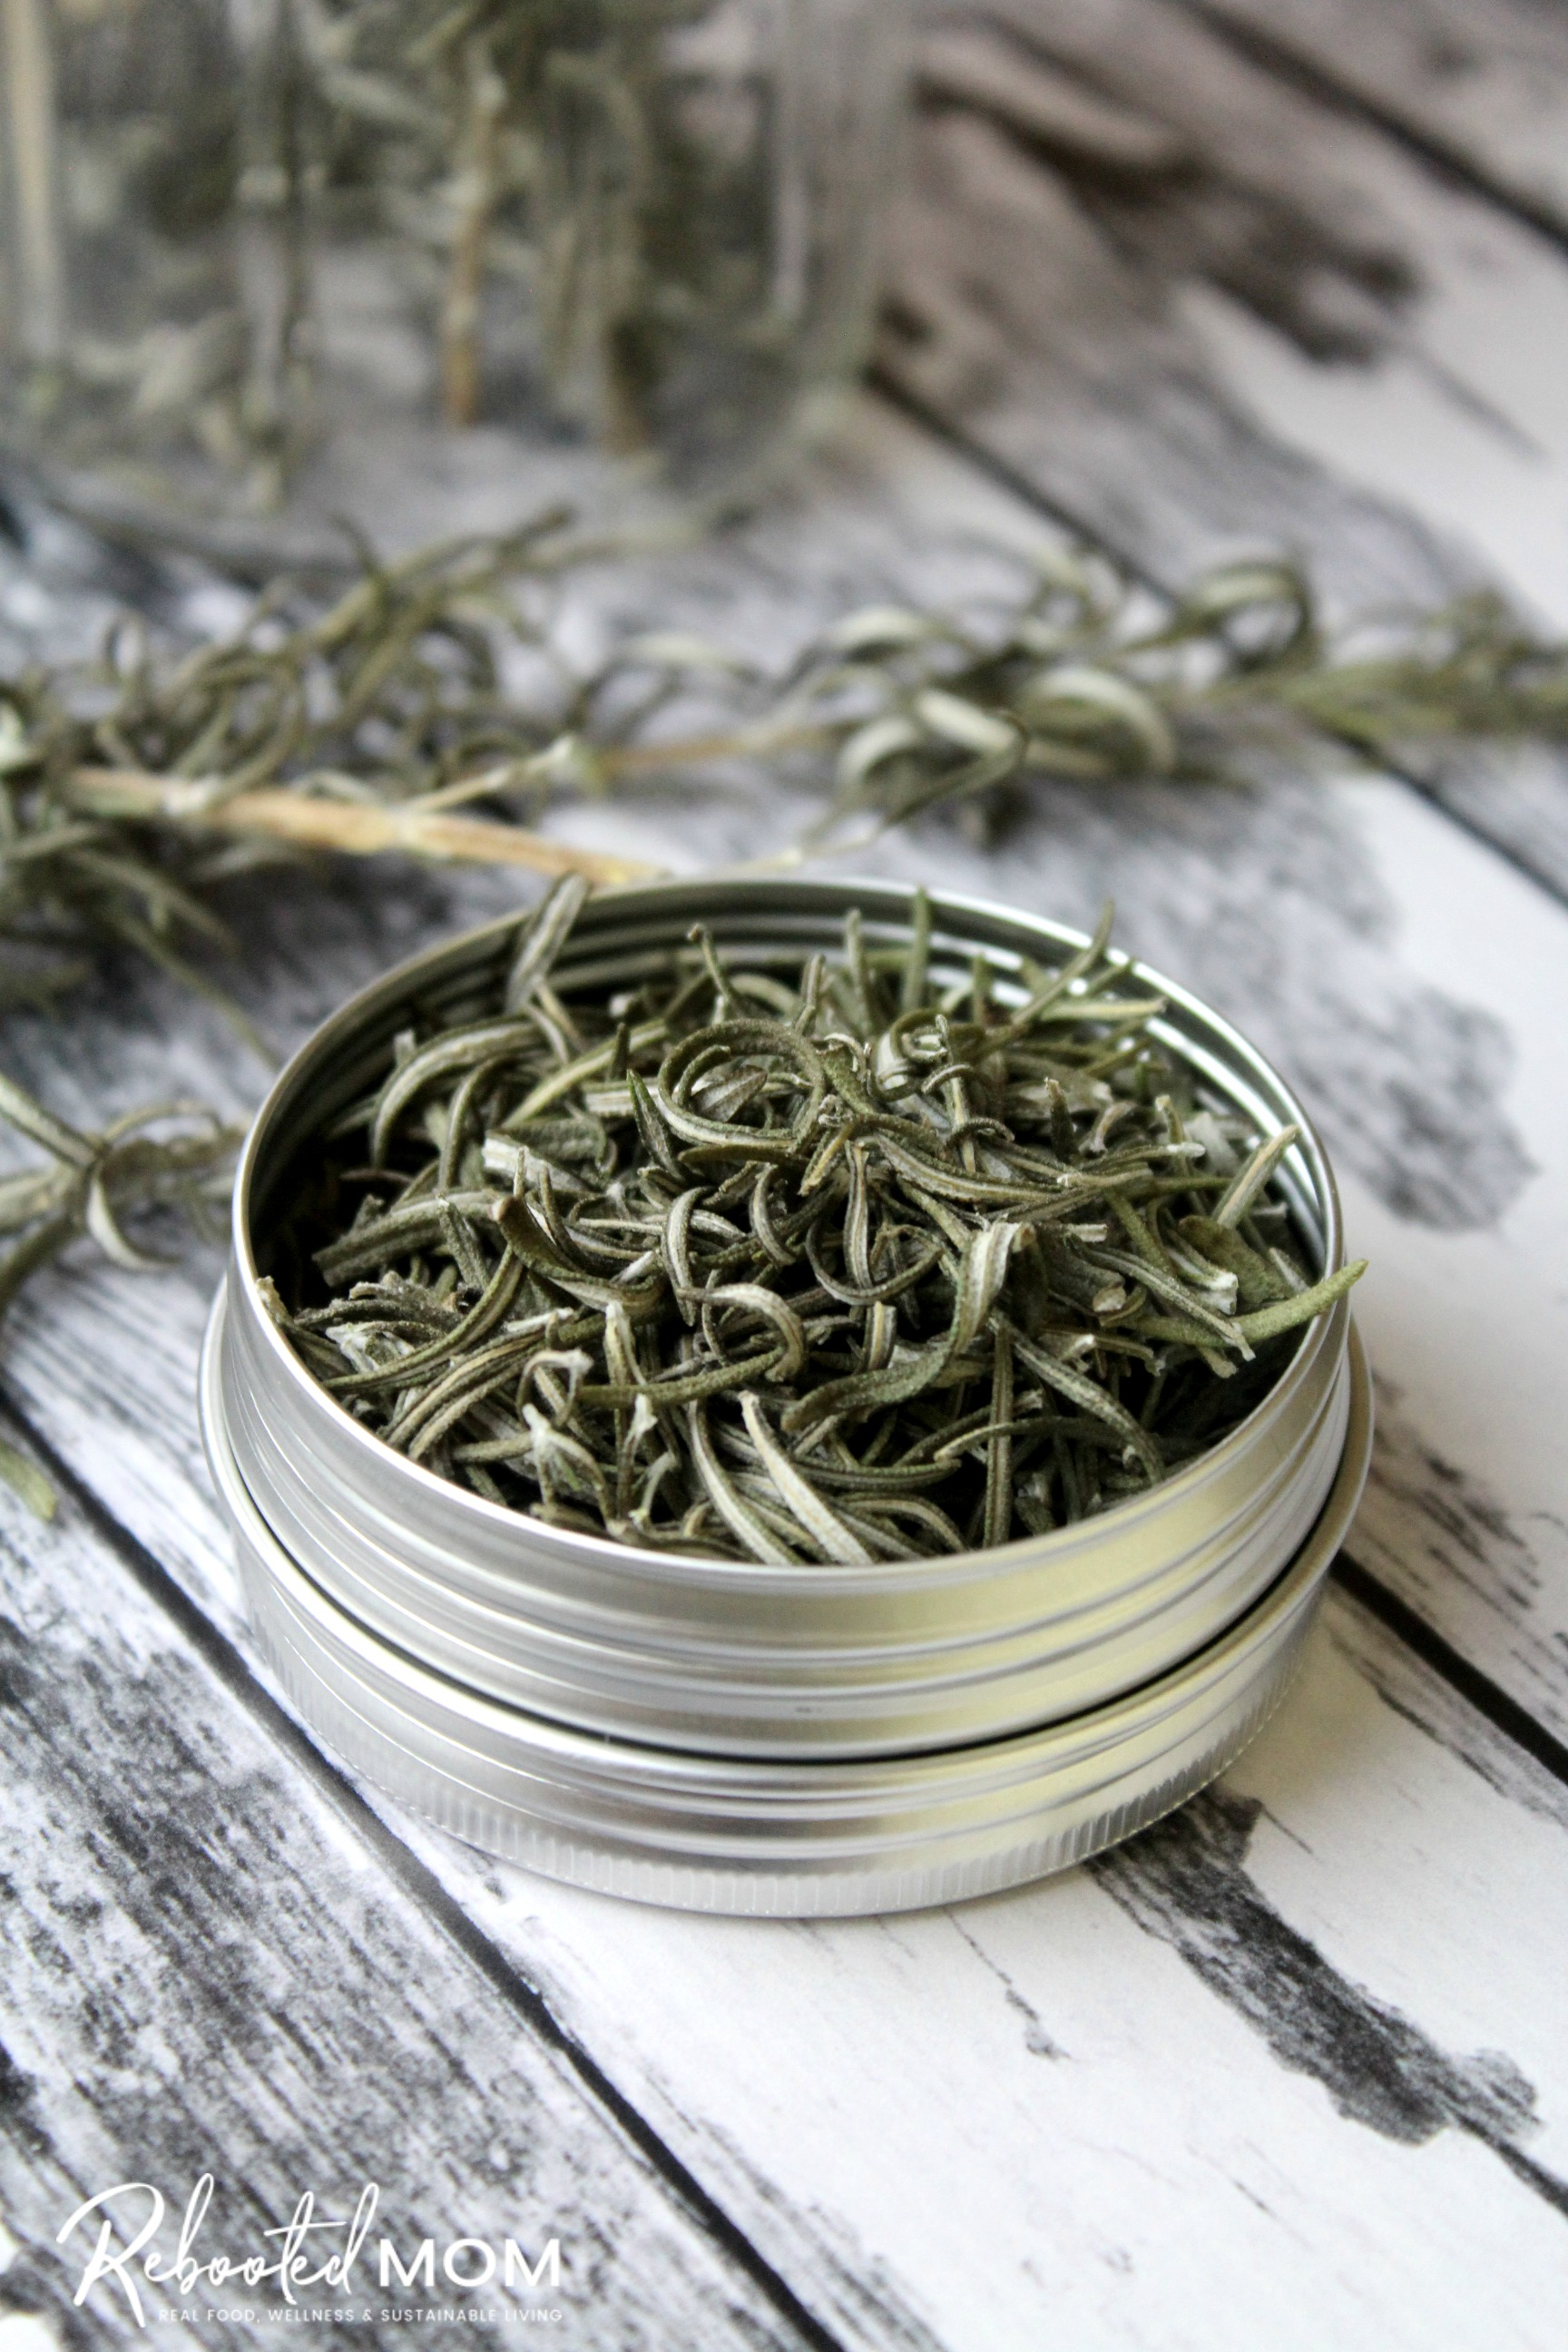 Learn how to dry rosemary in three easy methods - baking in the oven, air drying and using a dehydrator. Keep your rosemary fresh for a very long time.